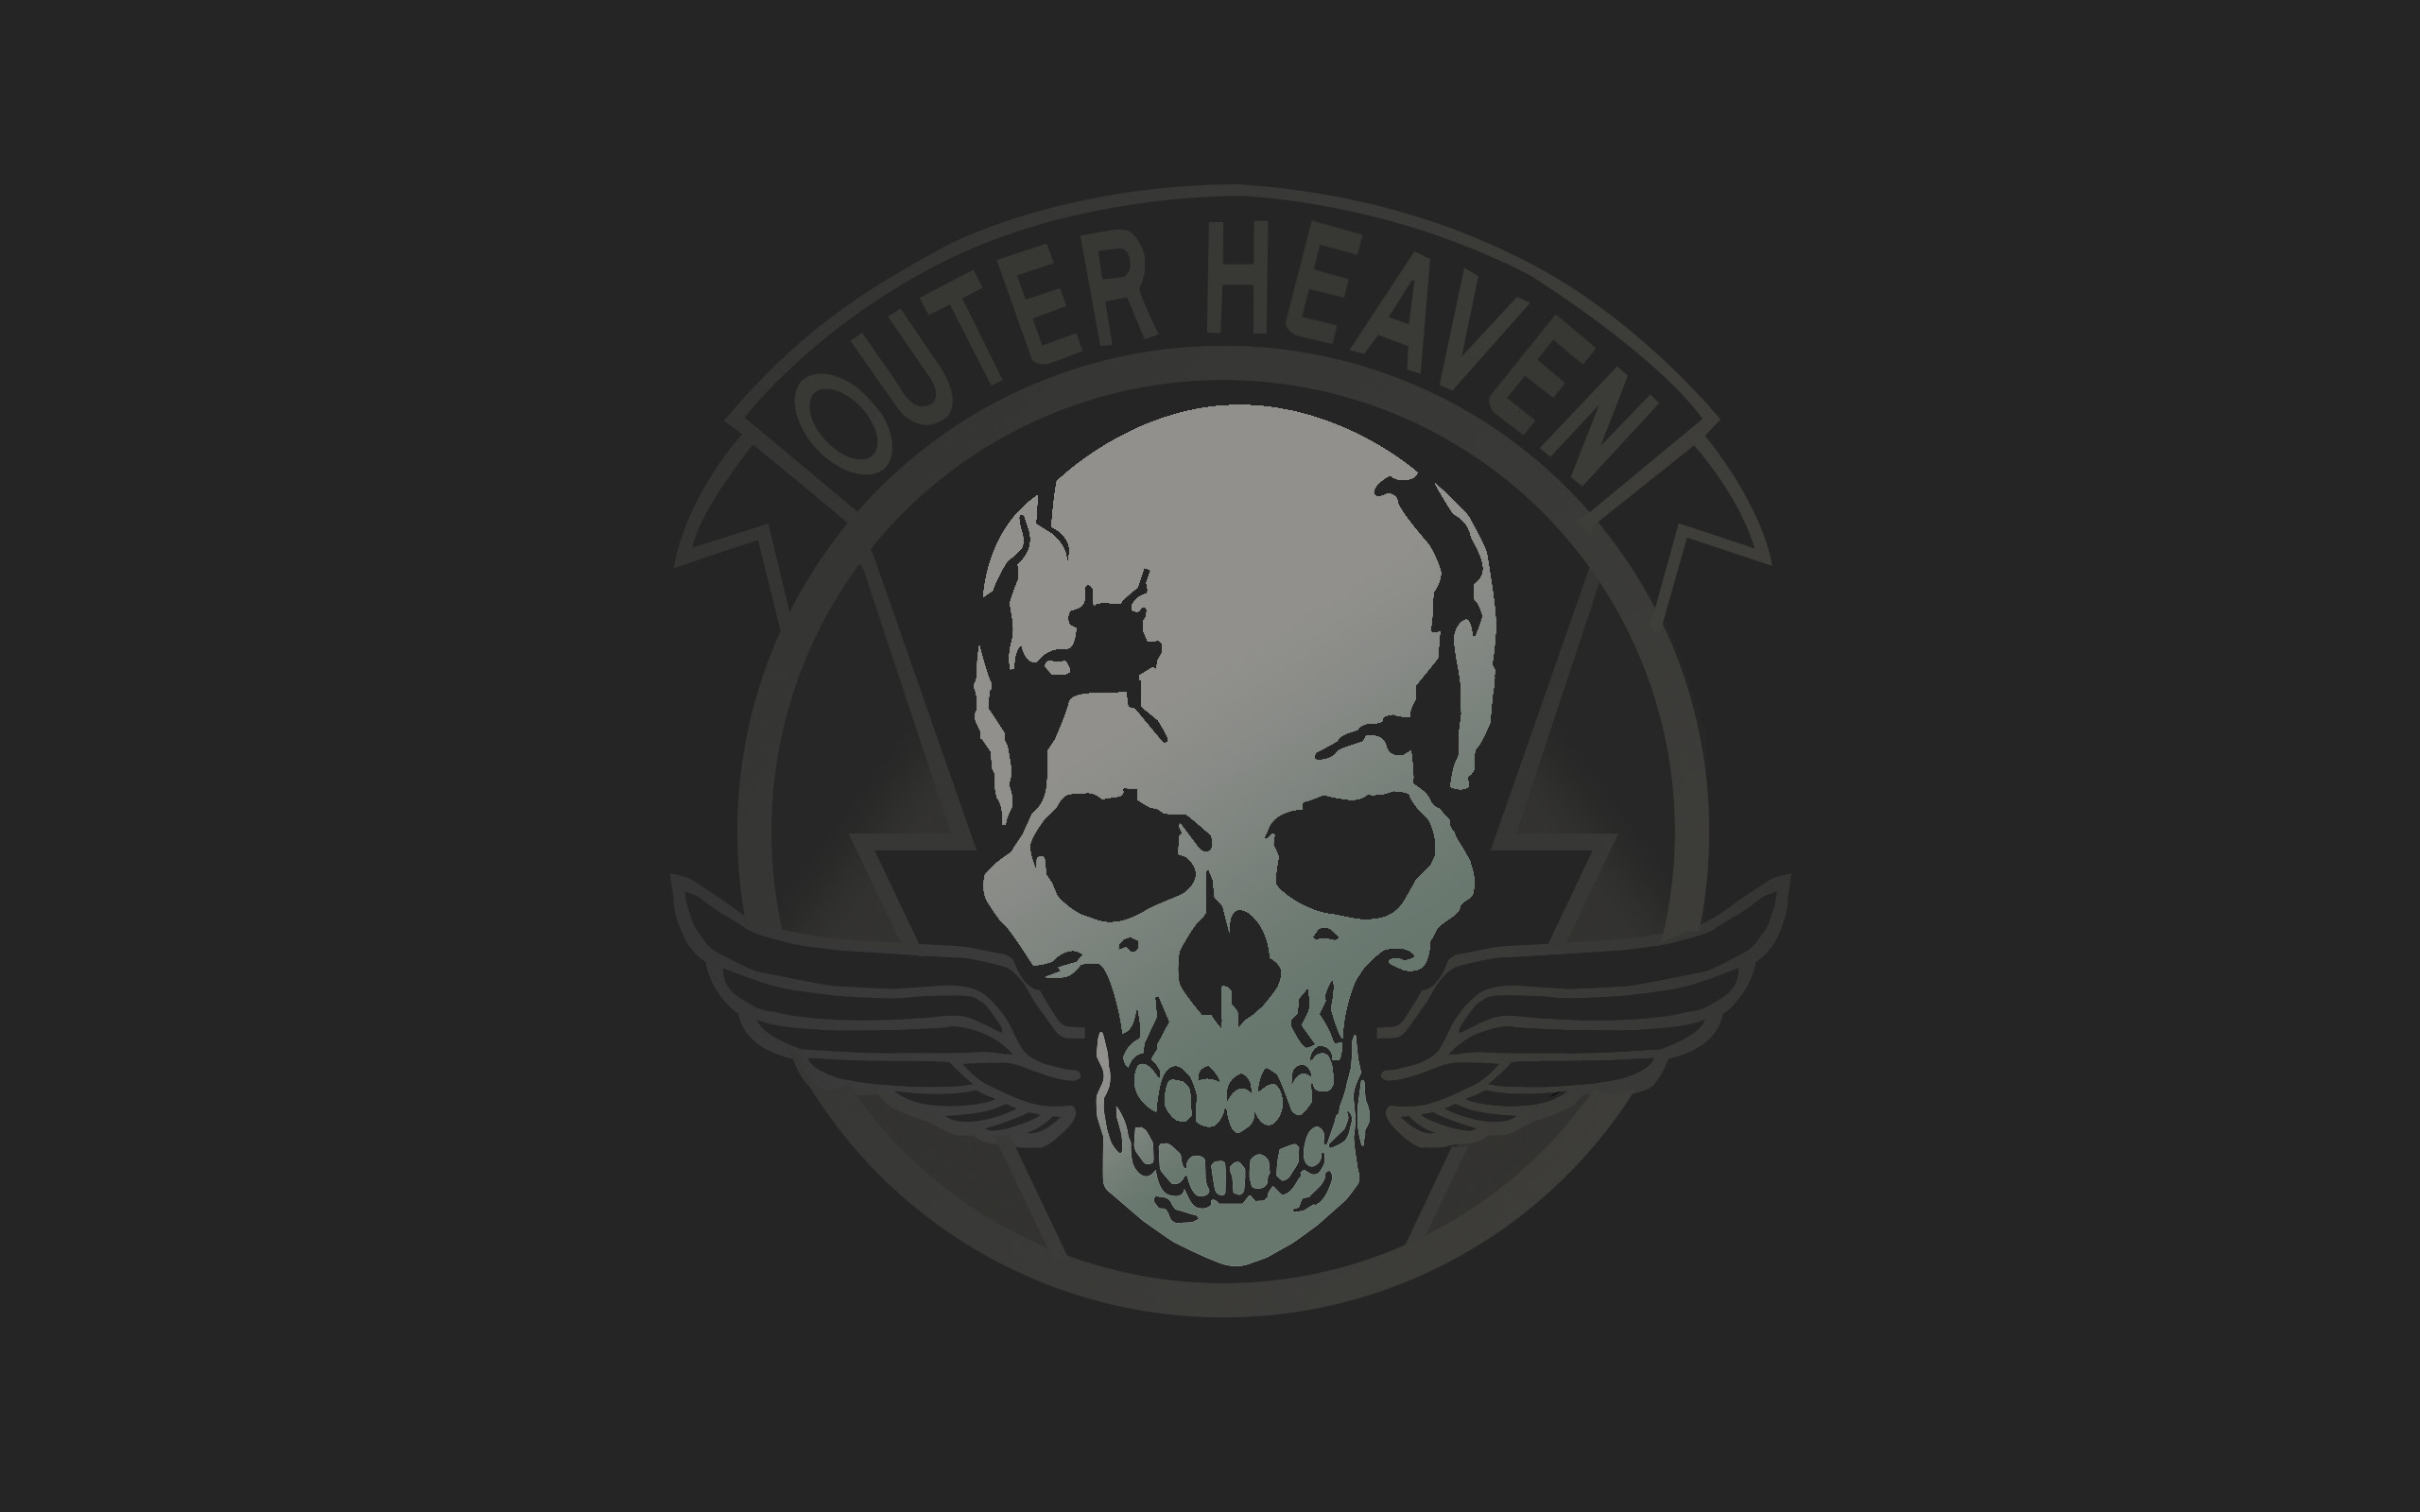 """Also, Outer Heaven is a place """"Where Men become Demons"""". Venom"""